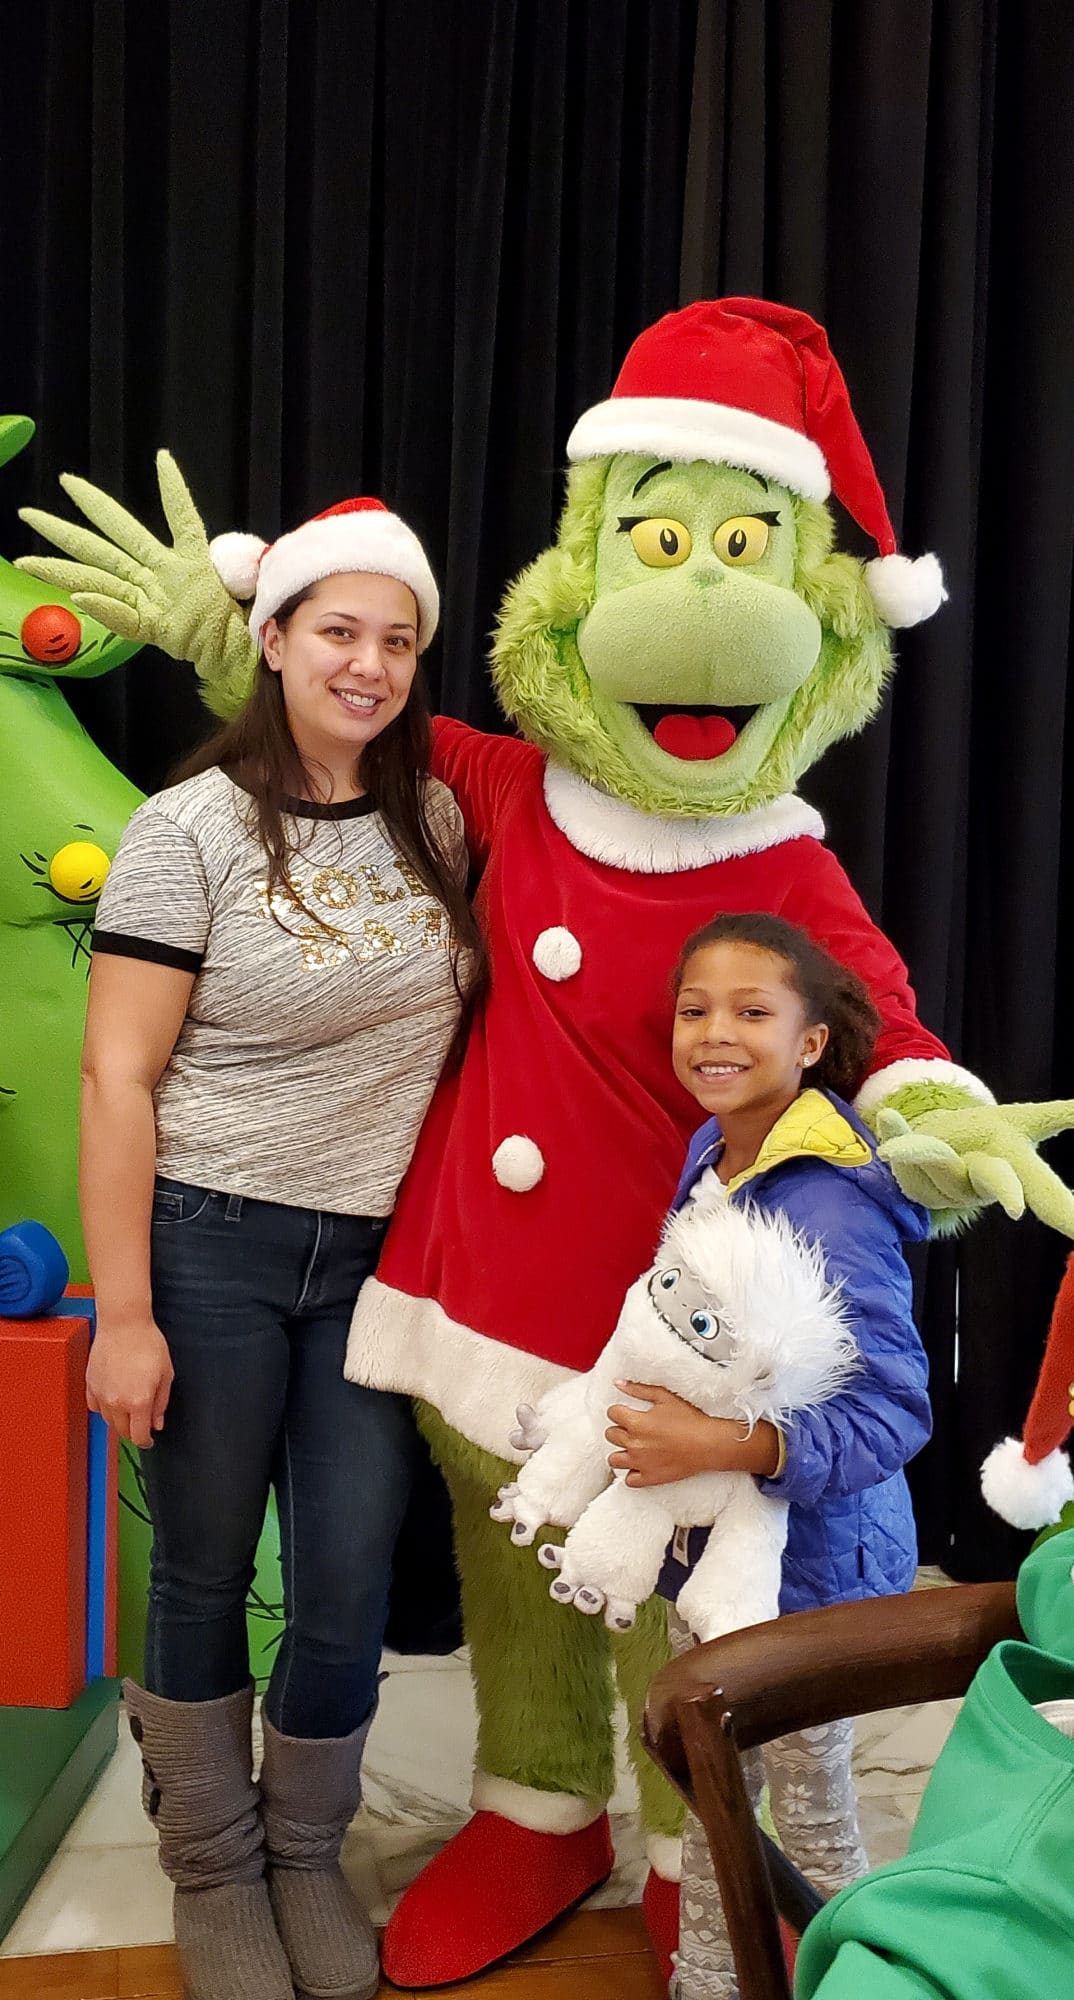 Feast With The Grinch Family Photo. Enjoy a delicious meal and meet the star of the holiday season…THE GRINCH himself! This one-of-a-kind interactive breakfast experience includes a buffet of Who-ville inspired items, table-side visits with The Grinch and Max and special touches Dr. Seuss fans are sure to adore.